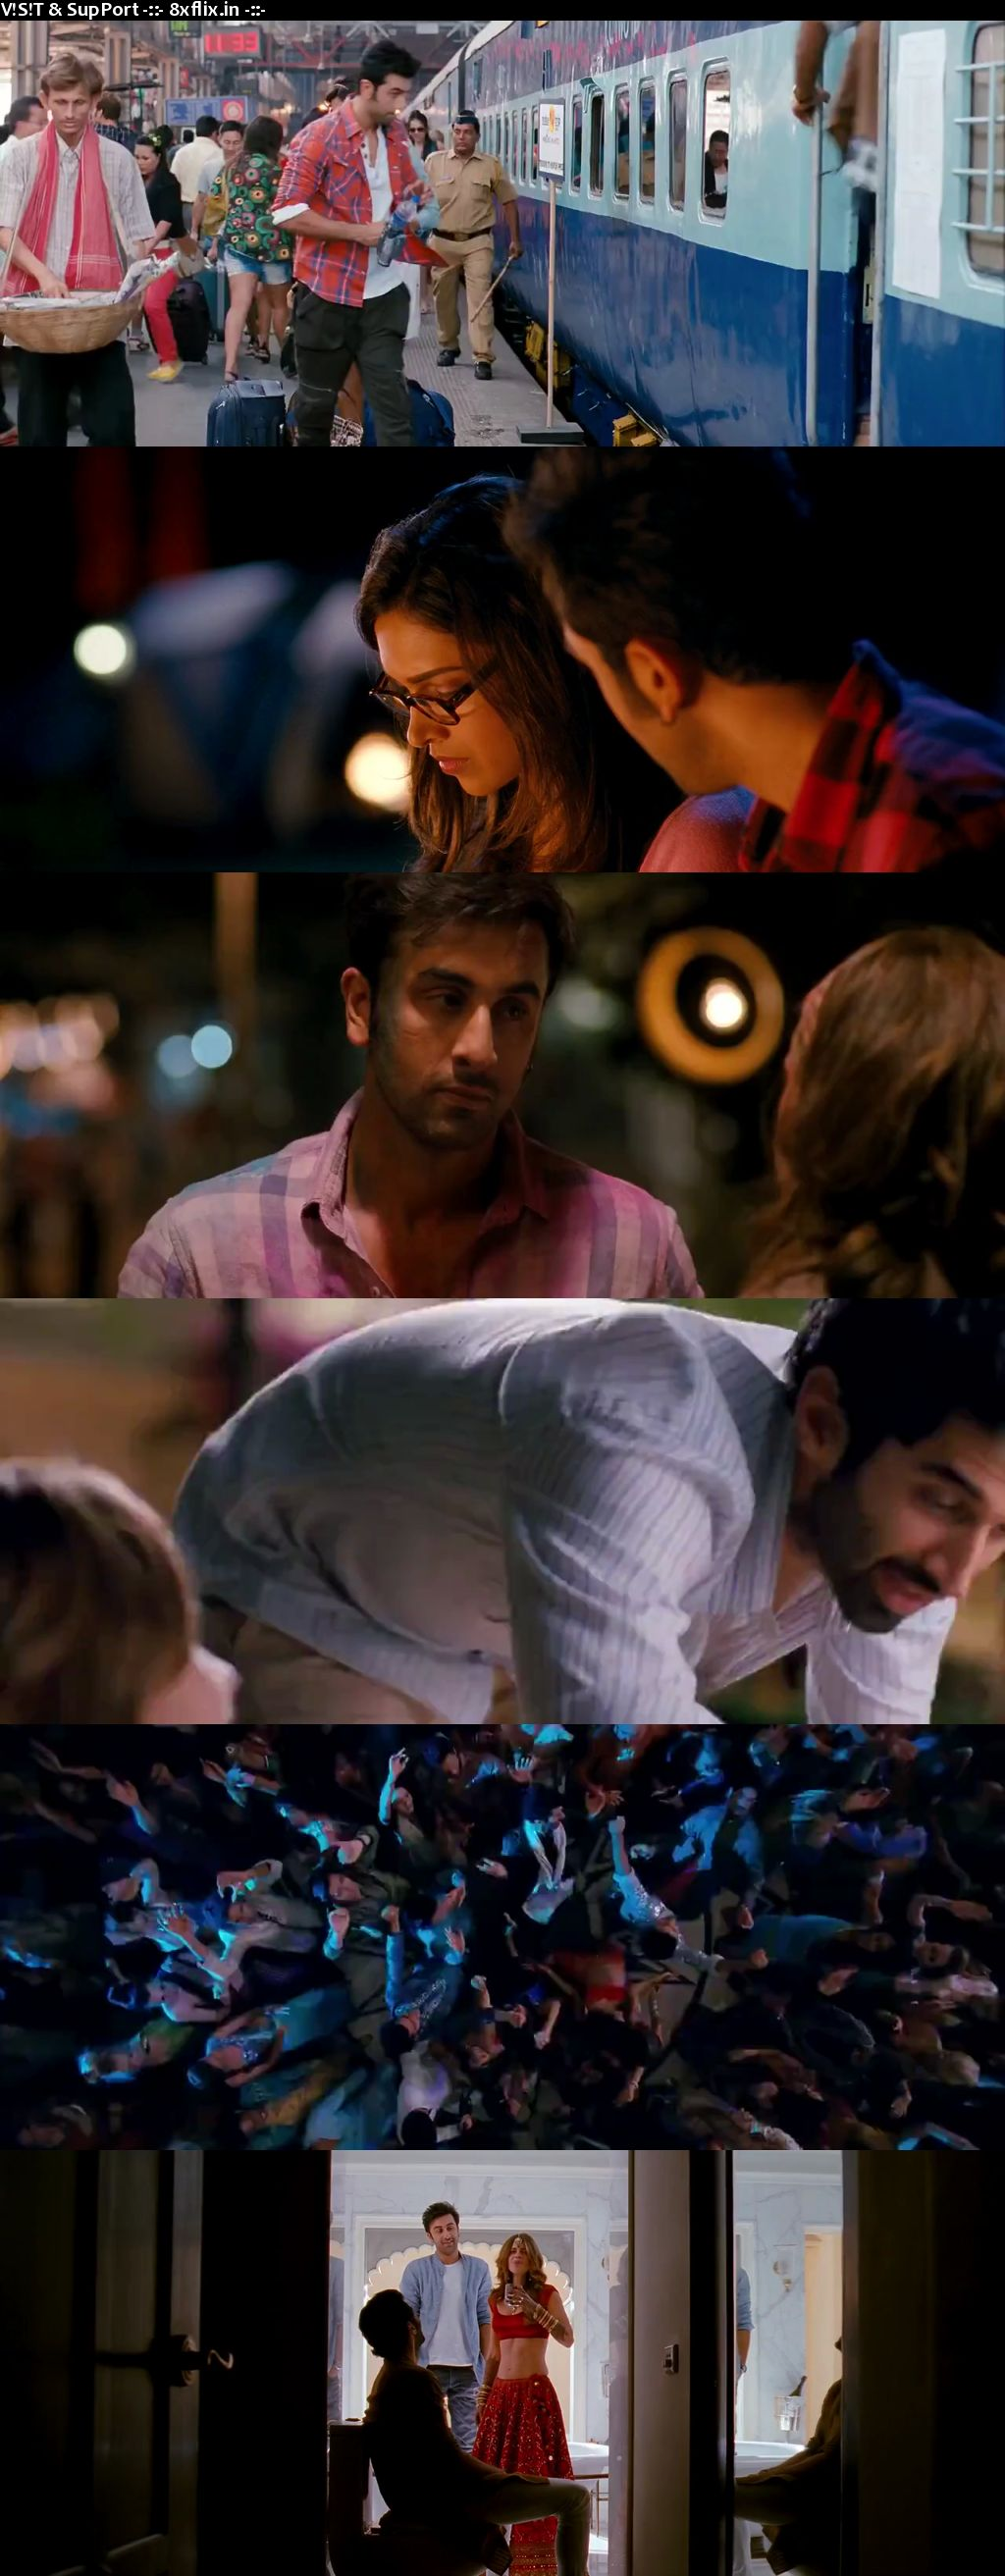 Yeh Jawaani Hai Deewani 2013 Full Hindi Movie Download 720p BRRip HD